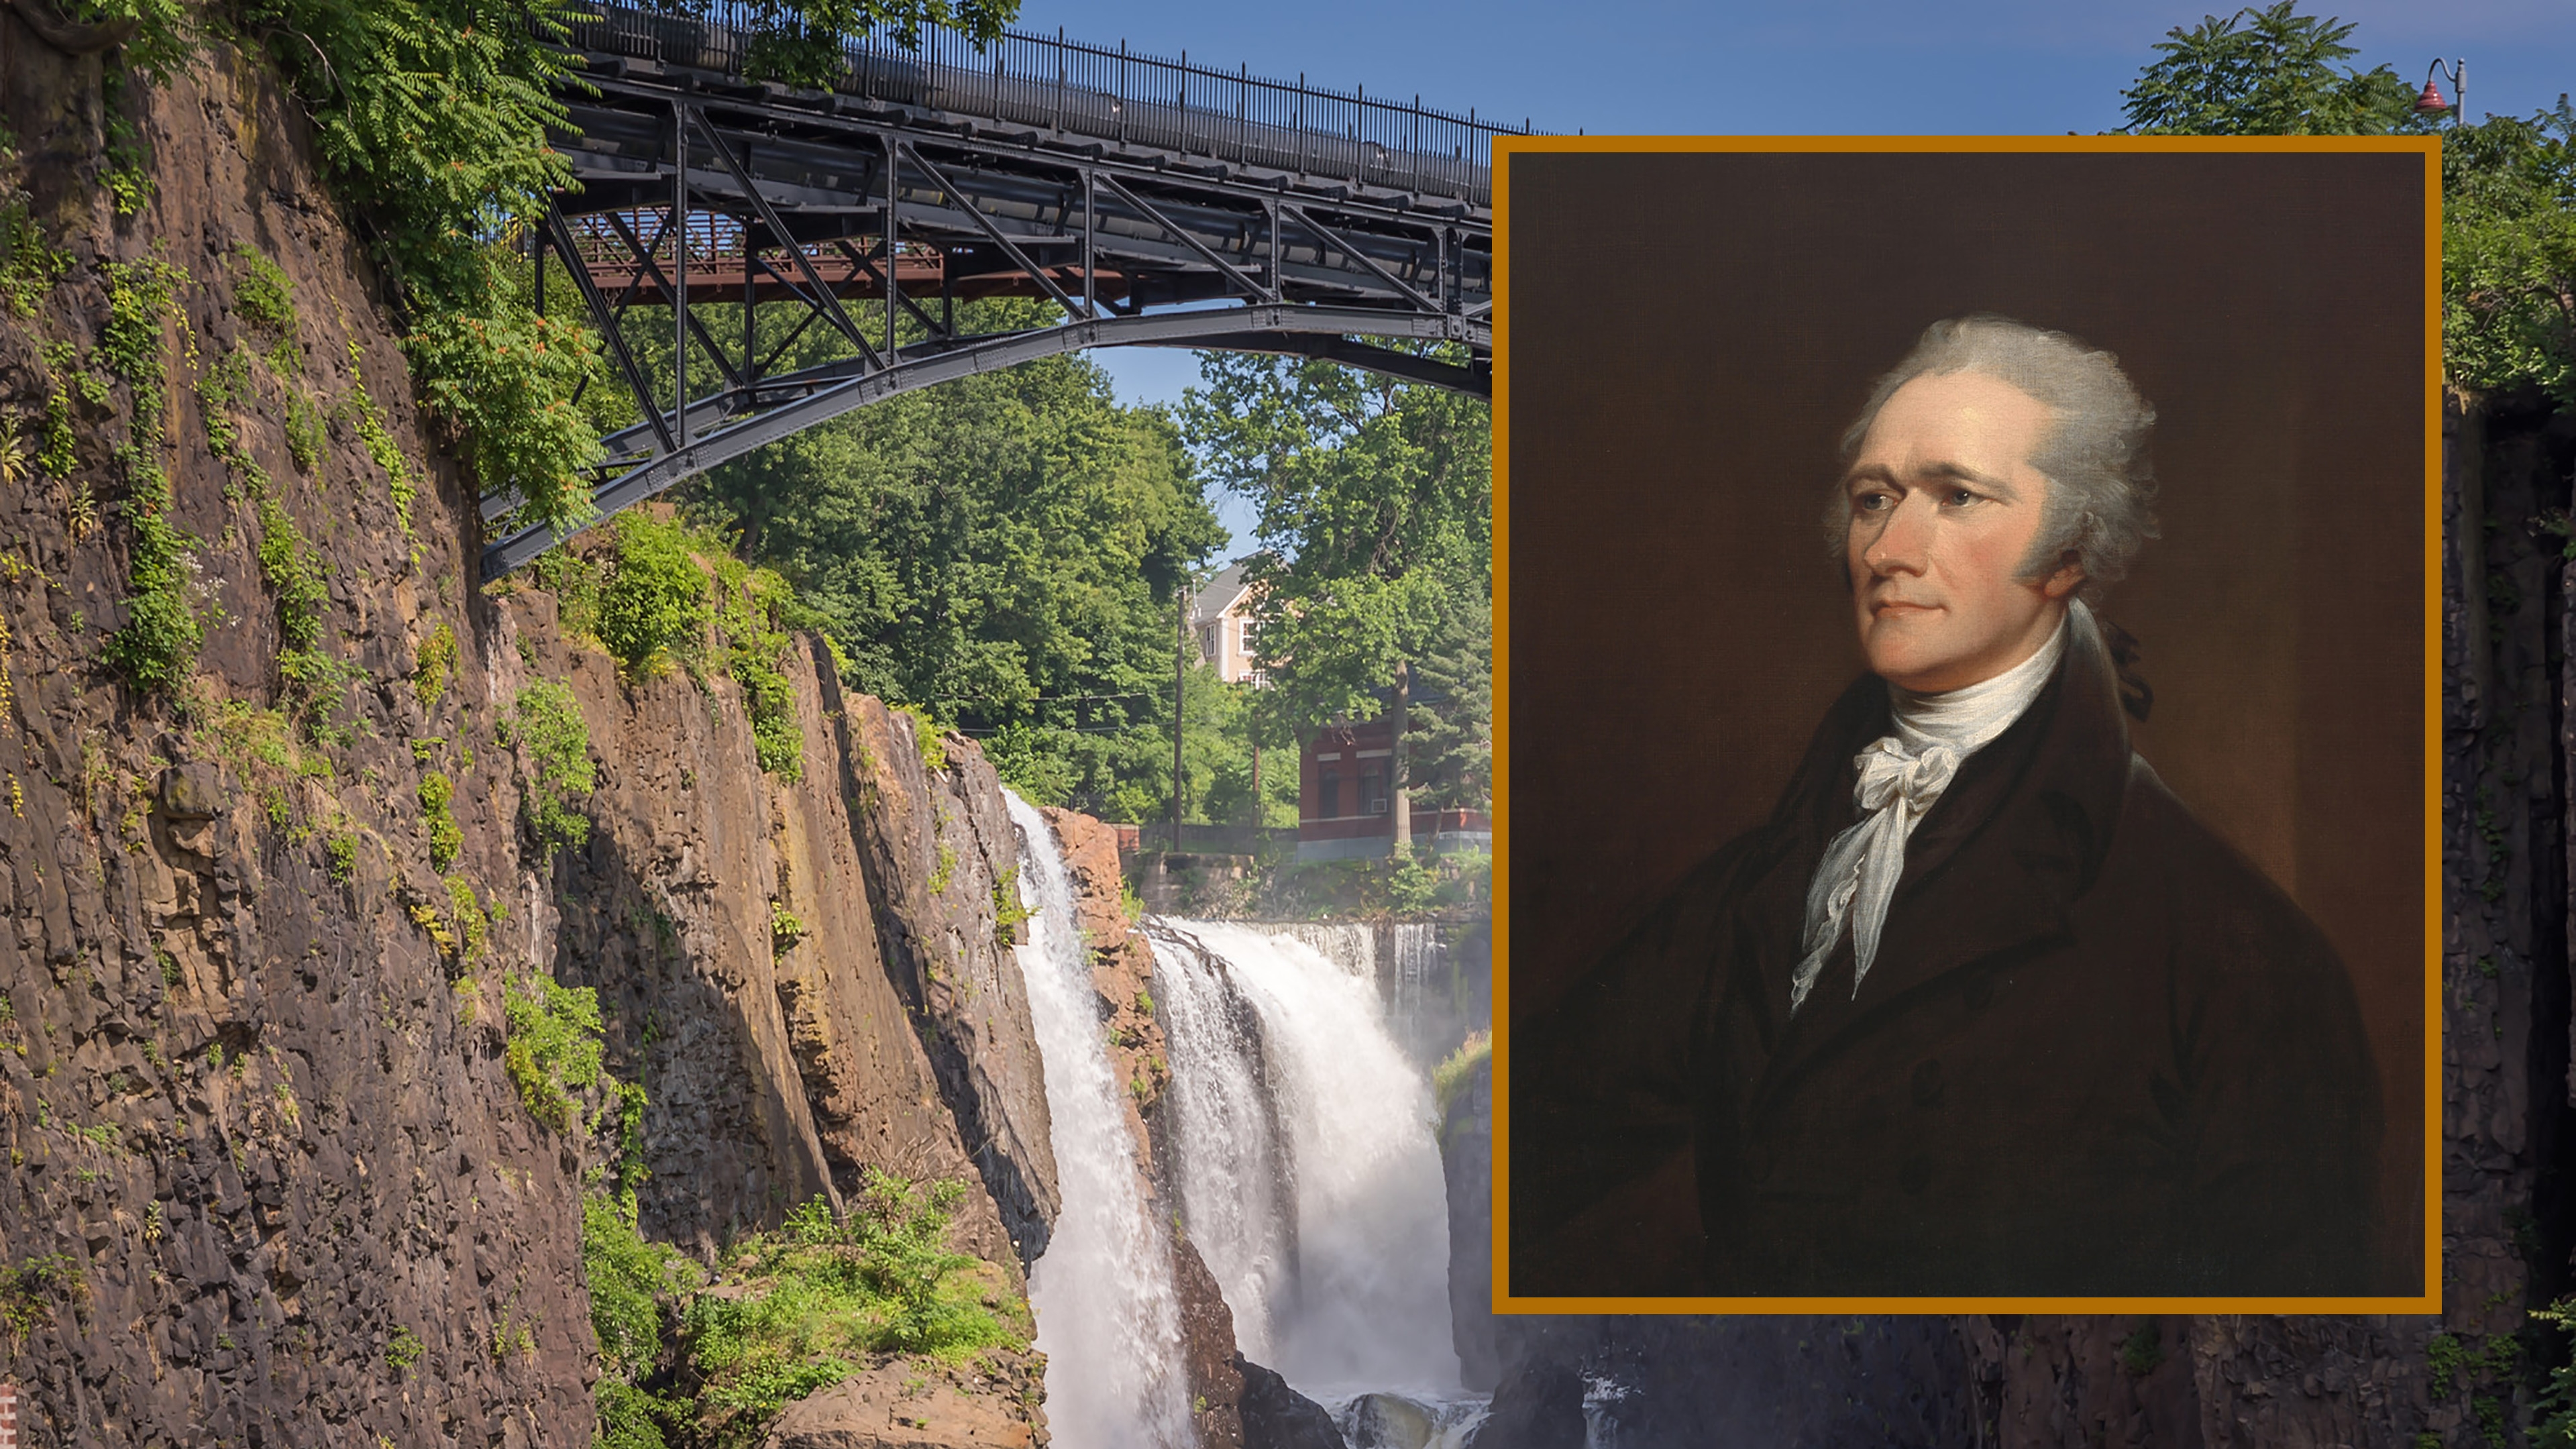 Waterfall with a high steel bridge reaching over it; Portrait of Alexander Hamilton as painted by John Trumbull